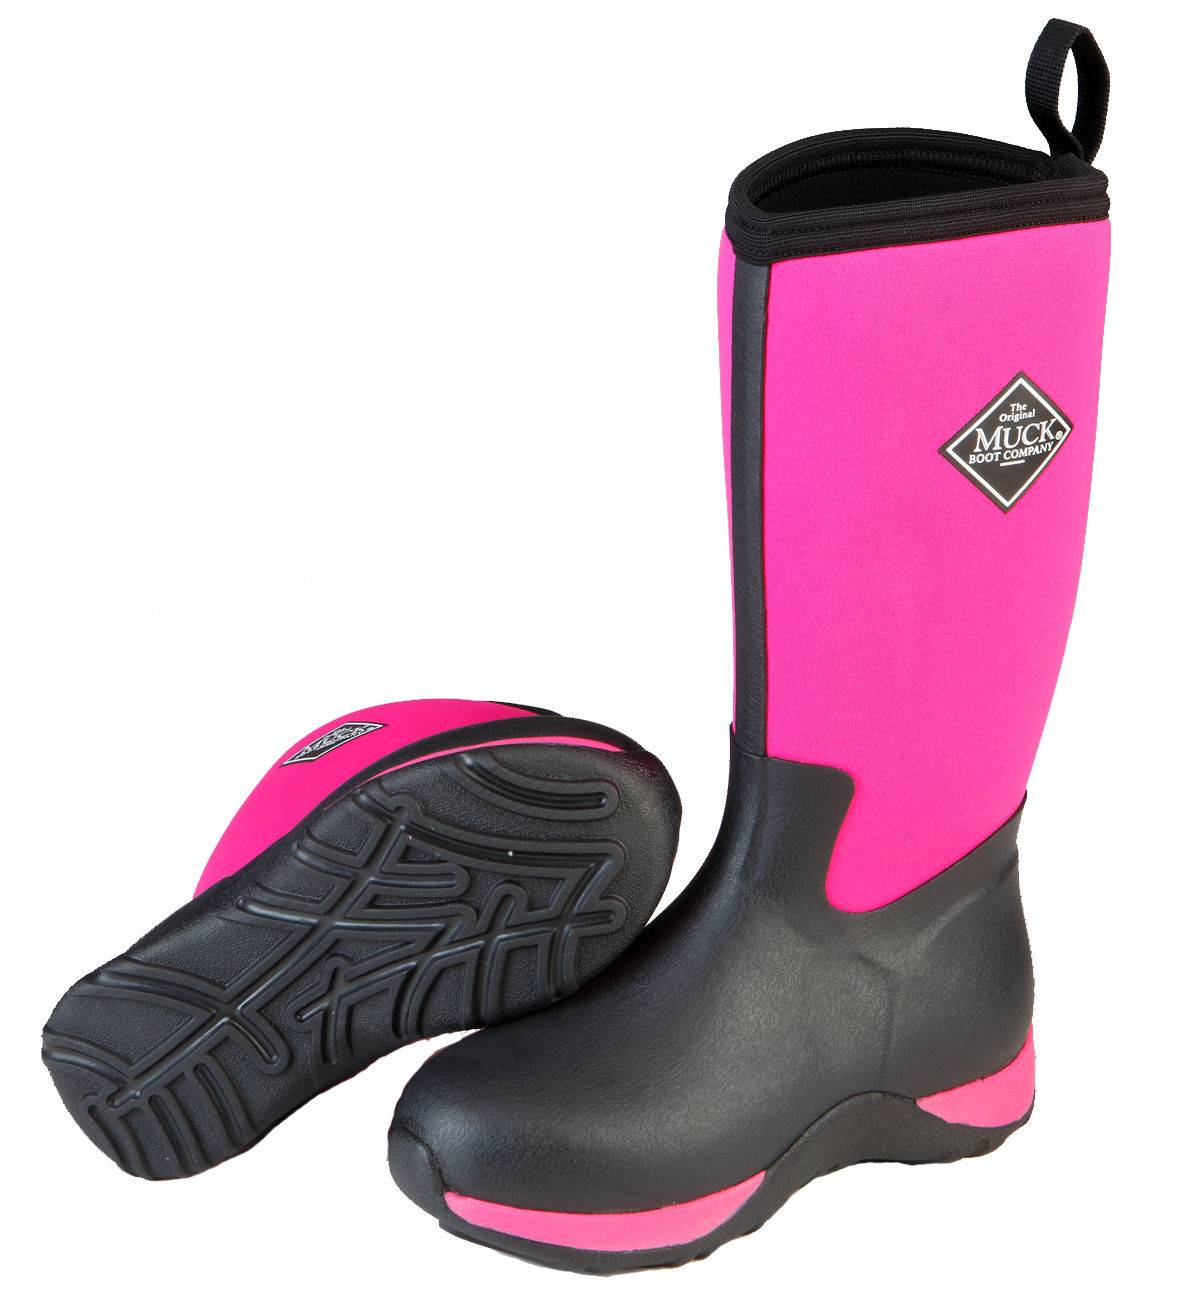 Muck Boots Arctic Adventure - Kids - Pink/Black